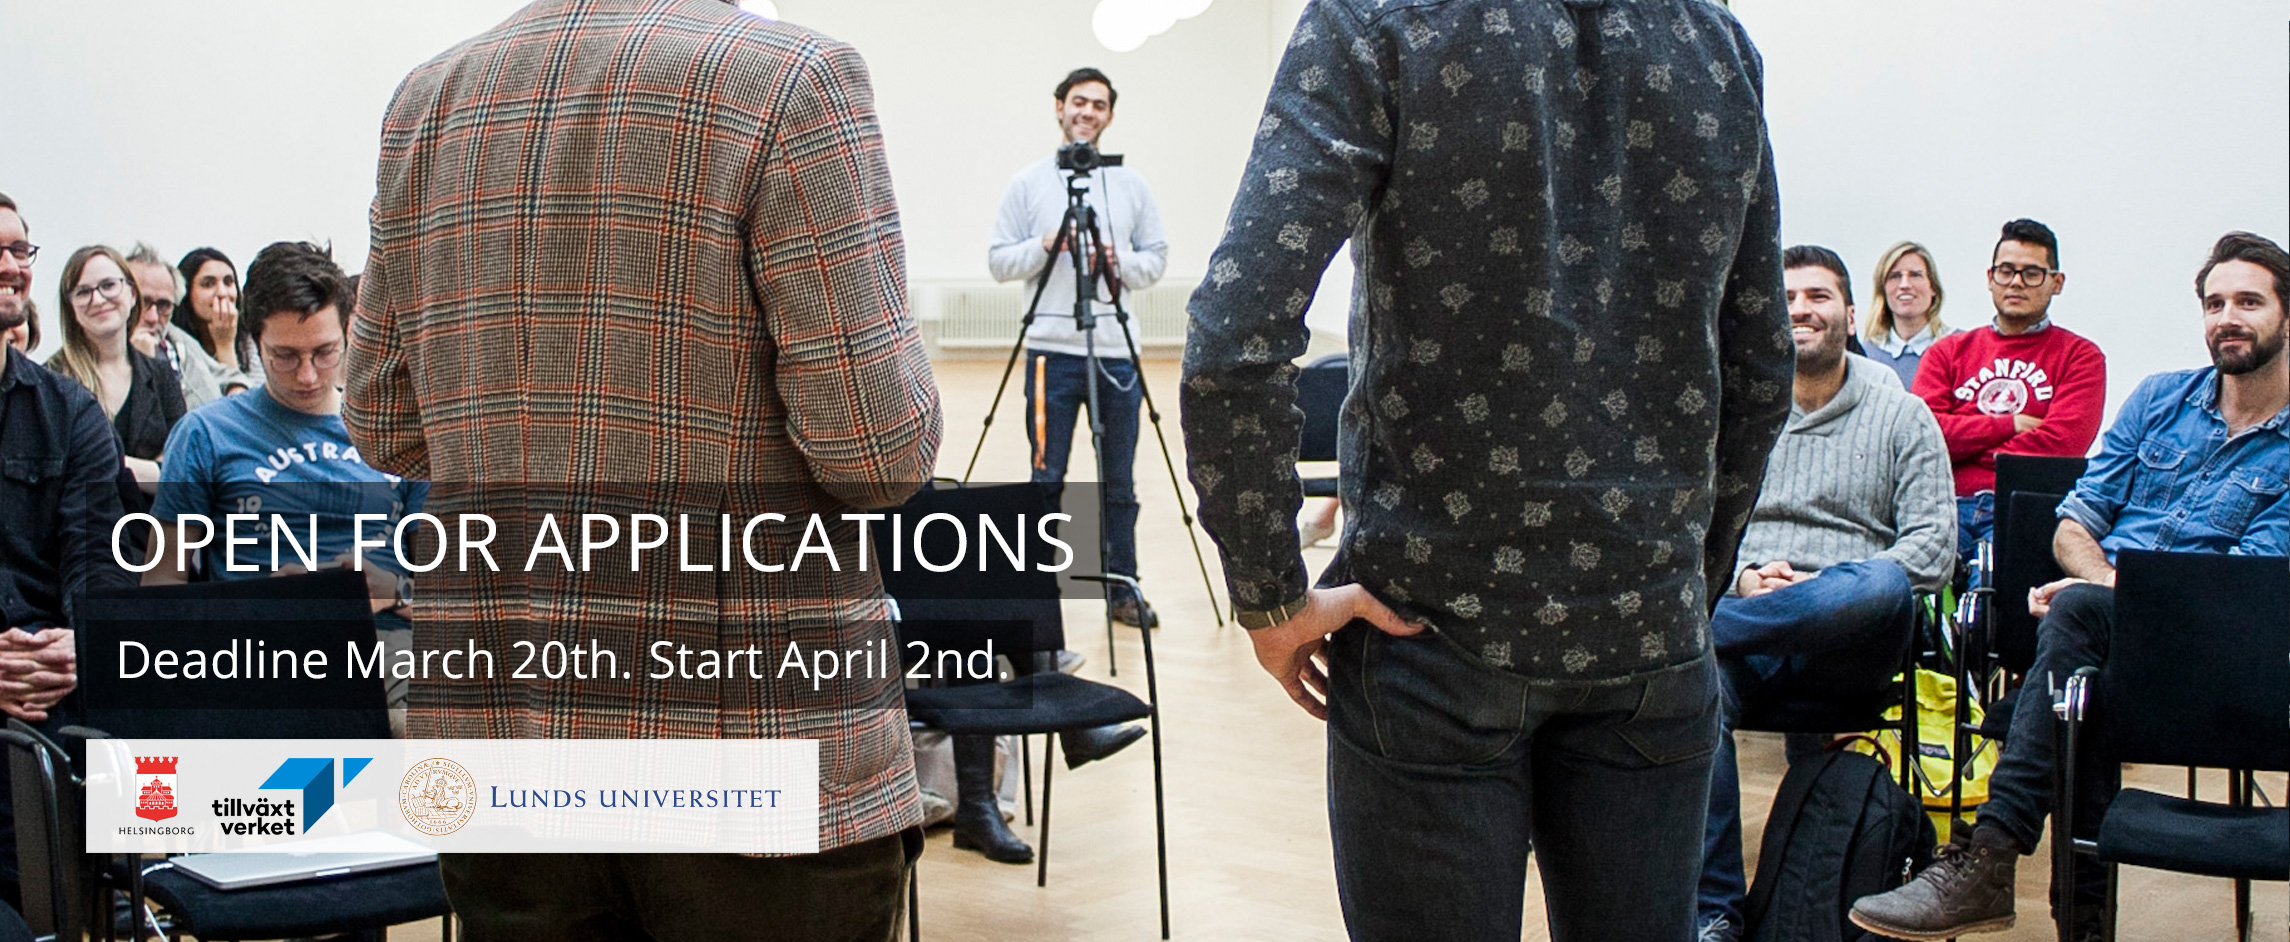 SoPact open for applications – deadline March 20th 2017